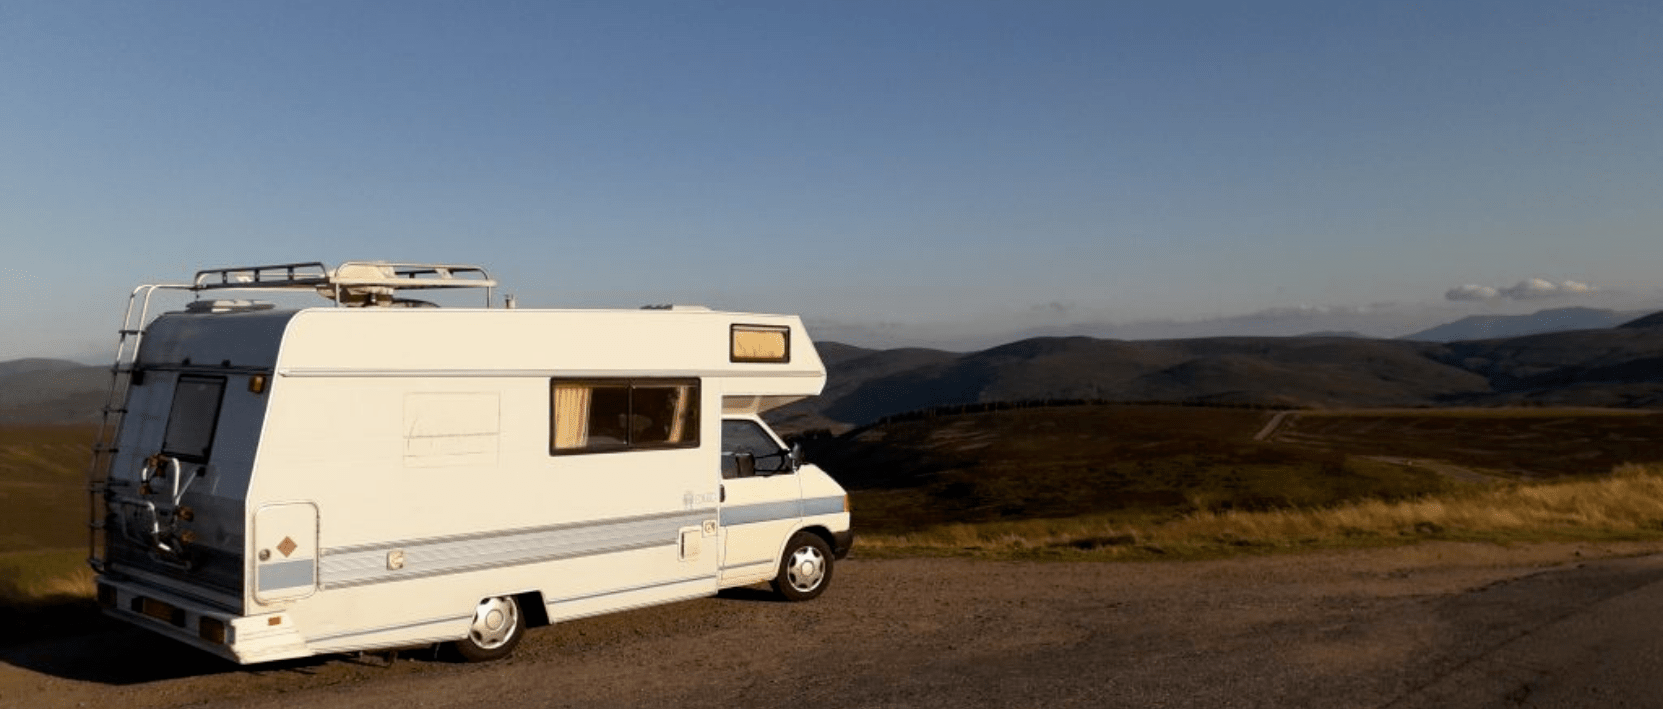 motorhome parked by roadside overlooking Cairngorms in Scotland